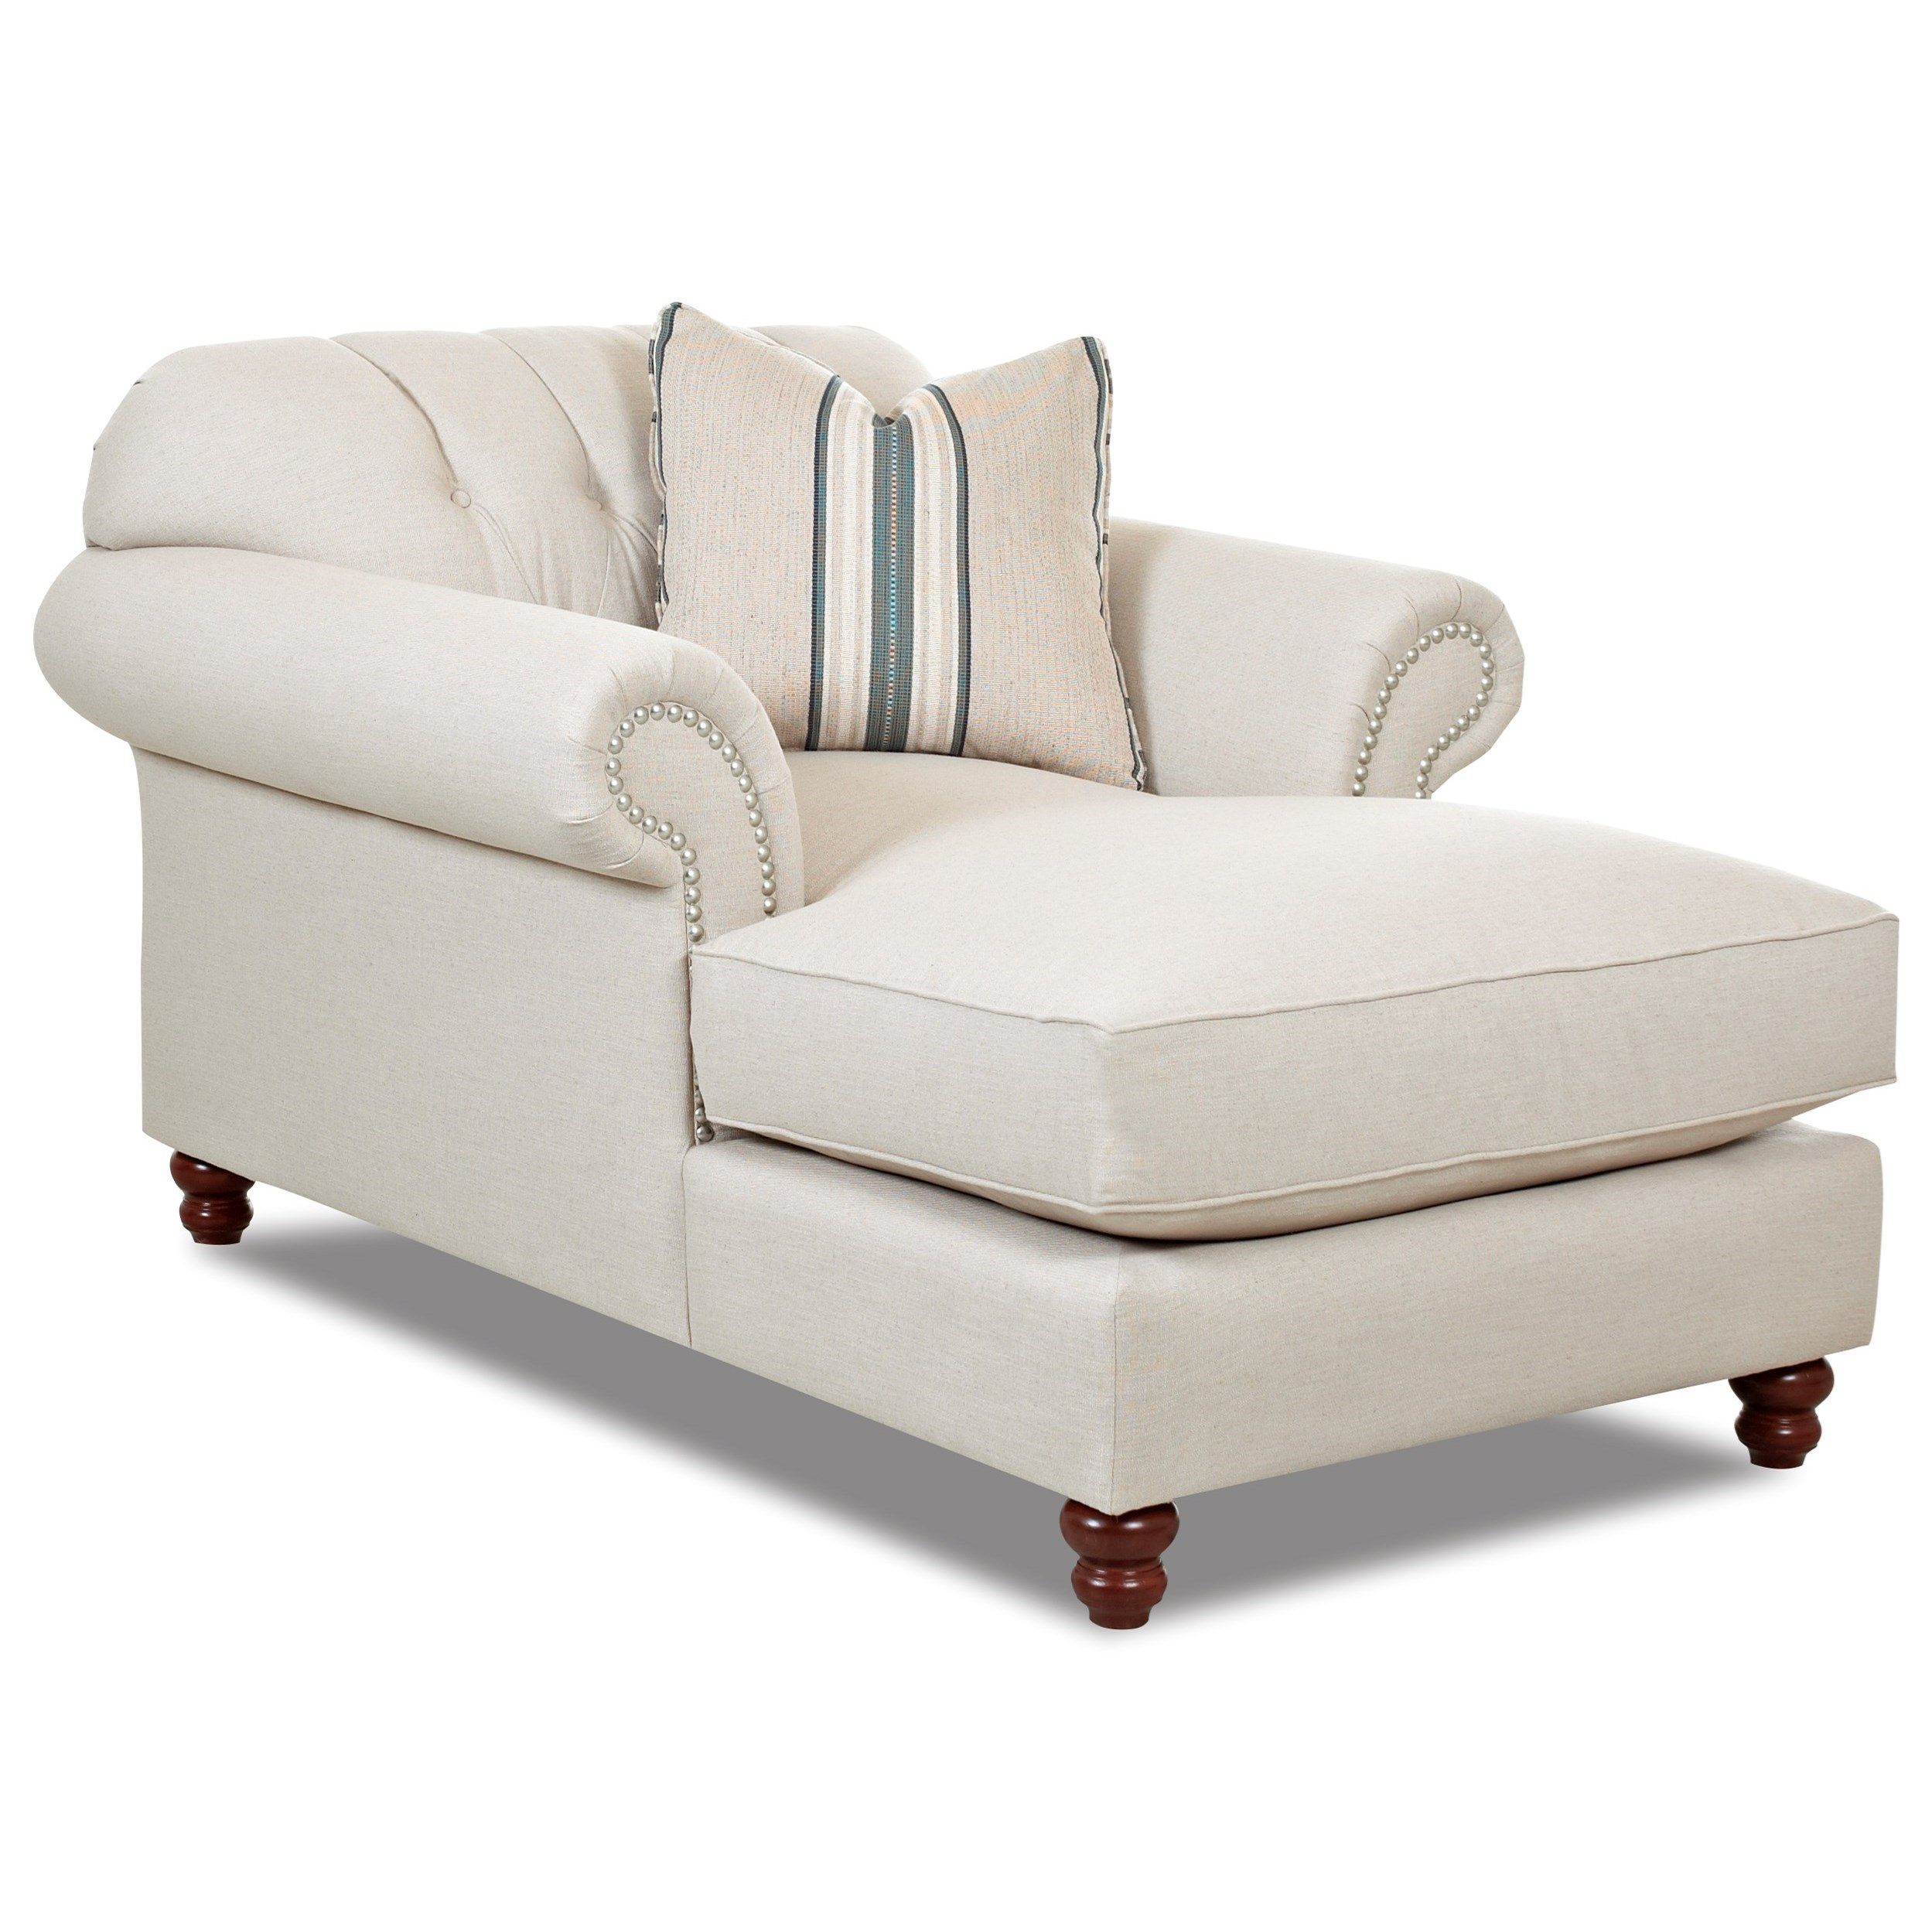 Klaussner flynn traditional chaise with button tufted back for Chaise and a half lounge